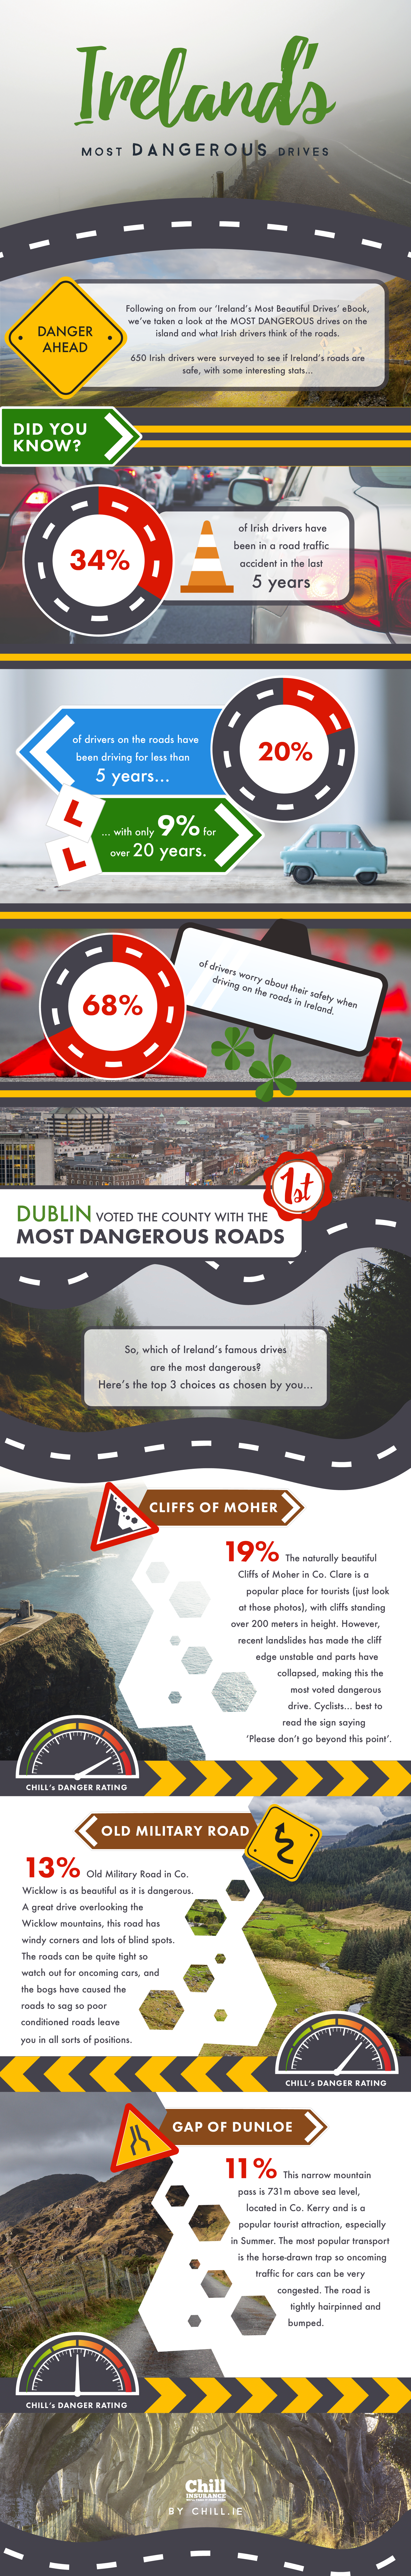 chill-ie-car-insurance-info-graphic